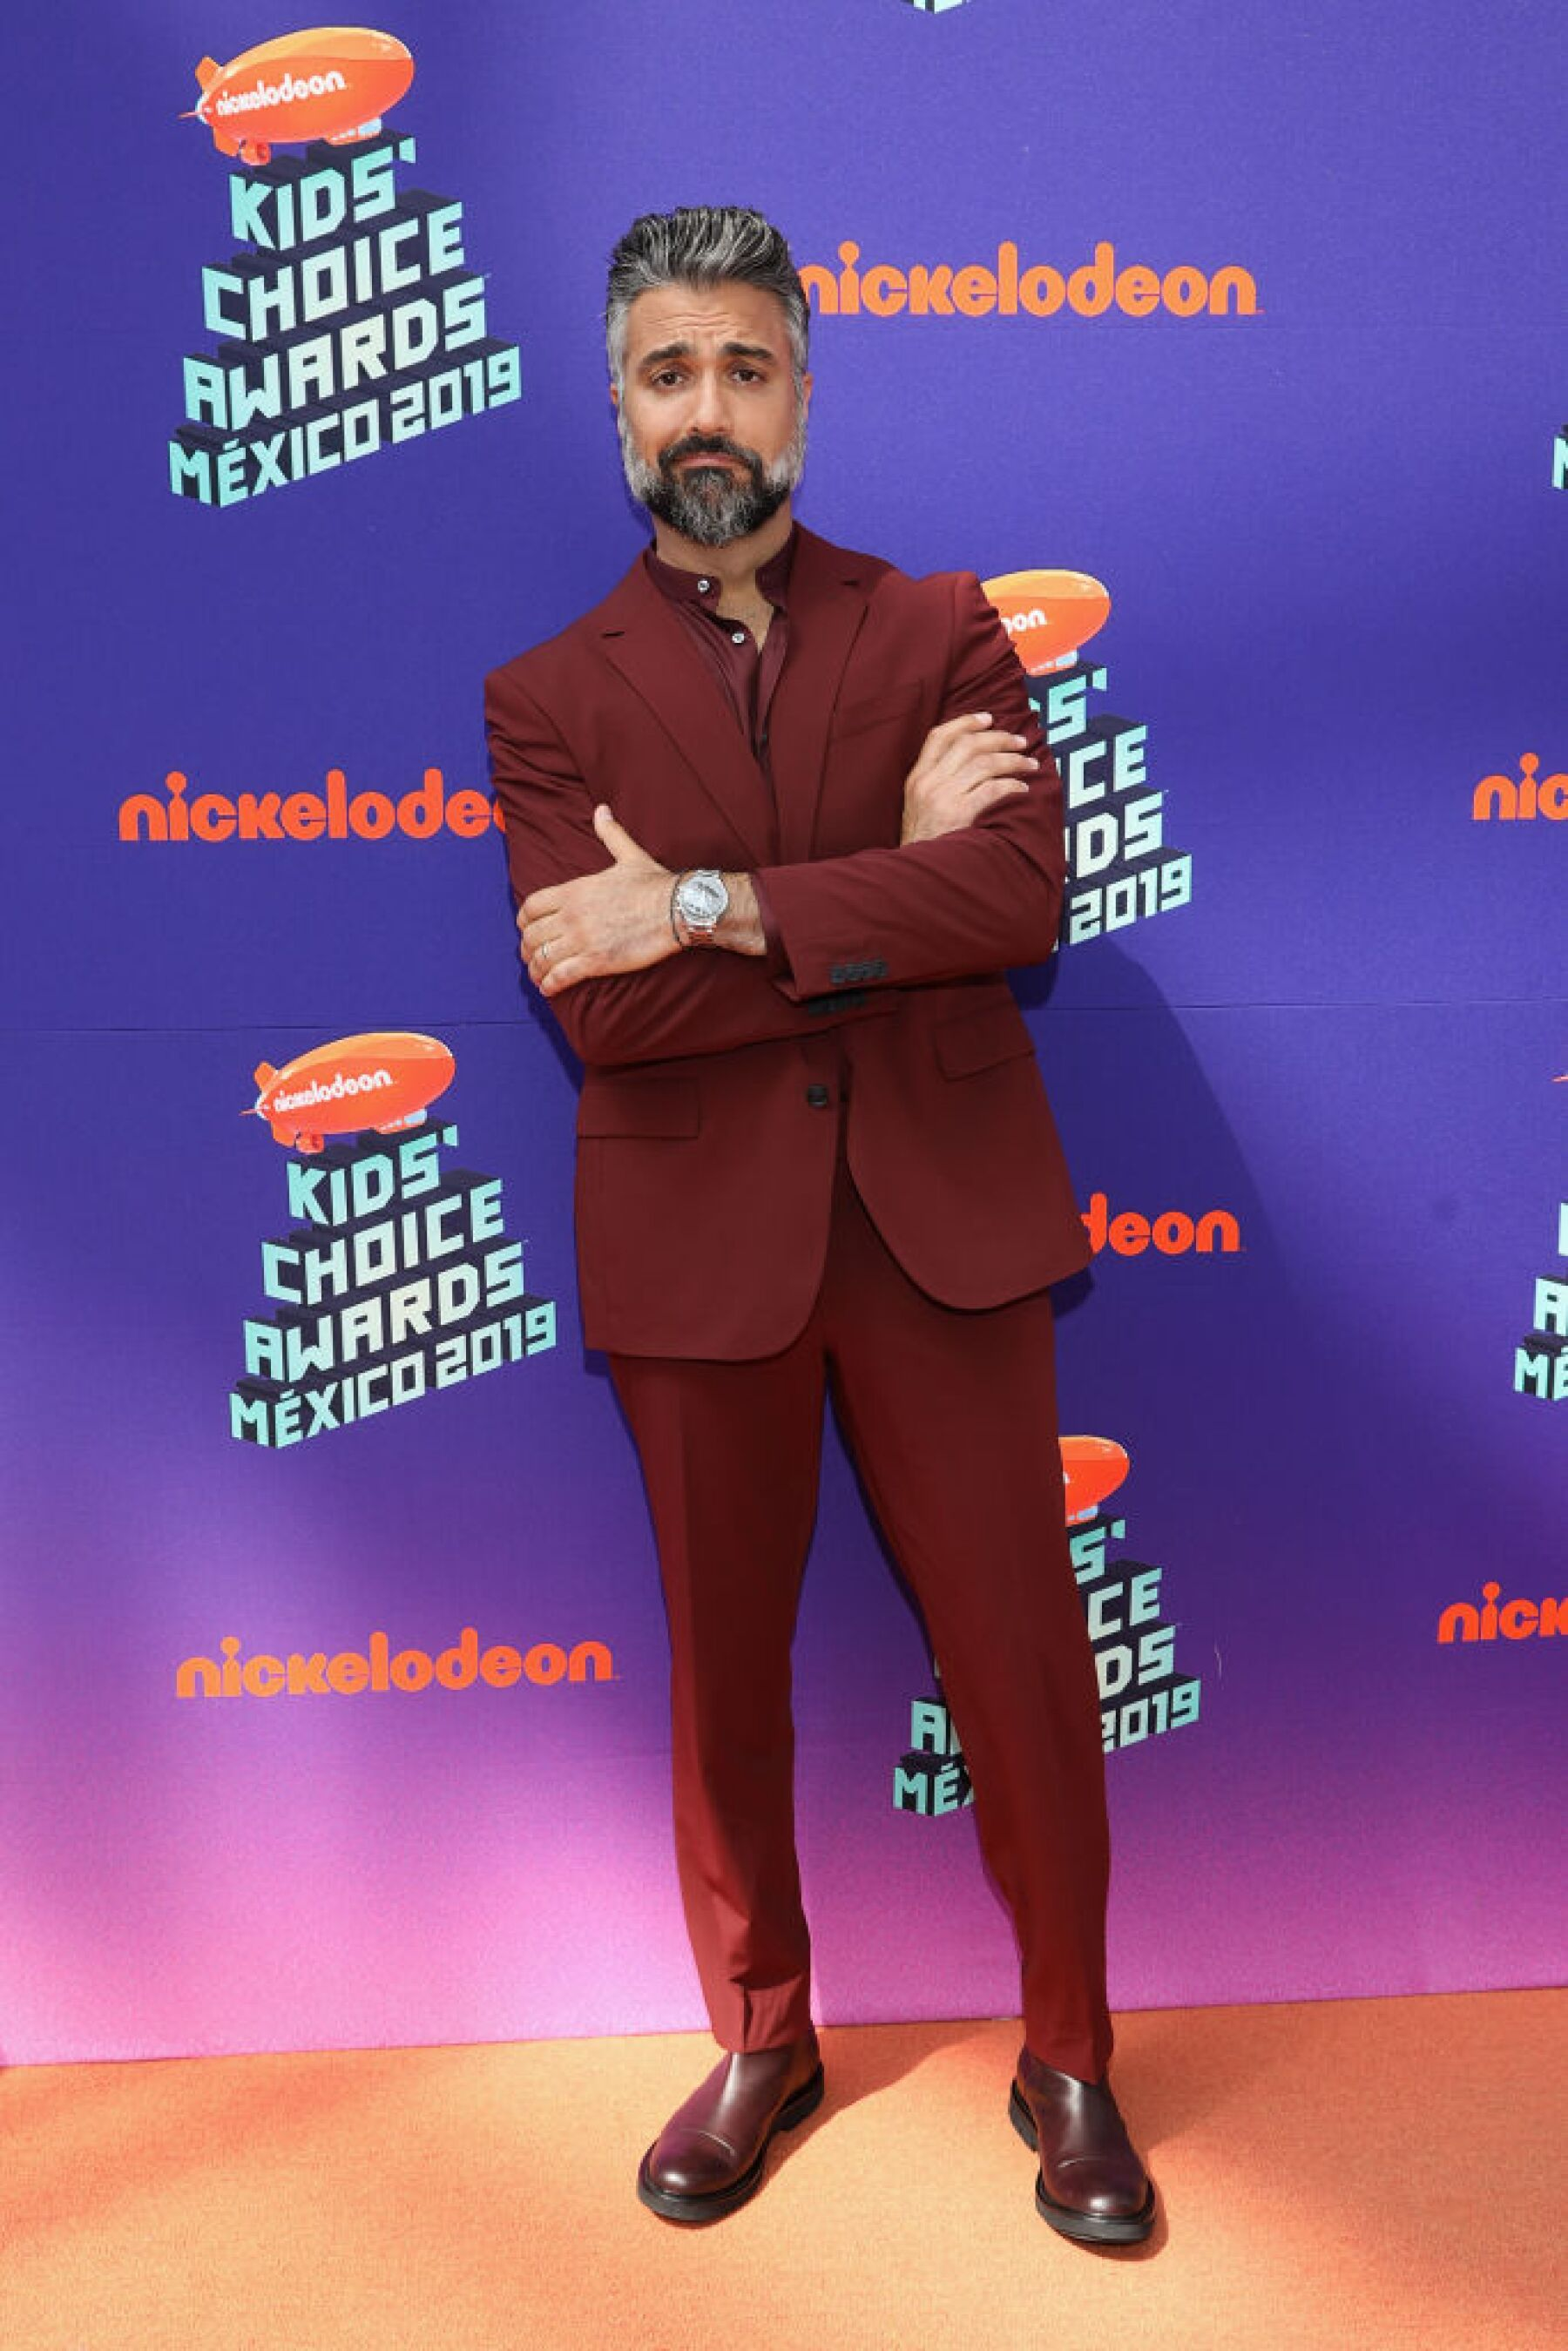 Kids Choice Awards Mexico 2019 - Orange Carpet & Show